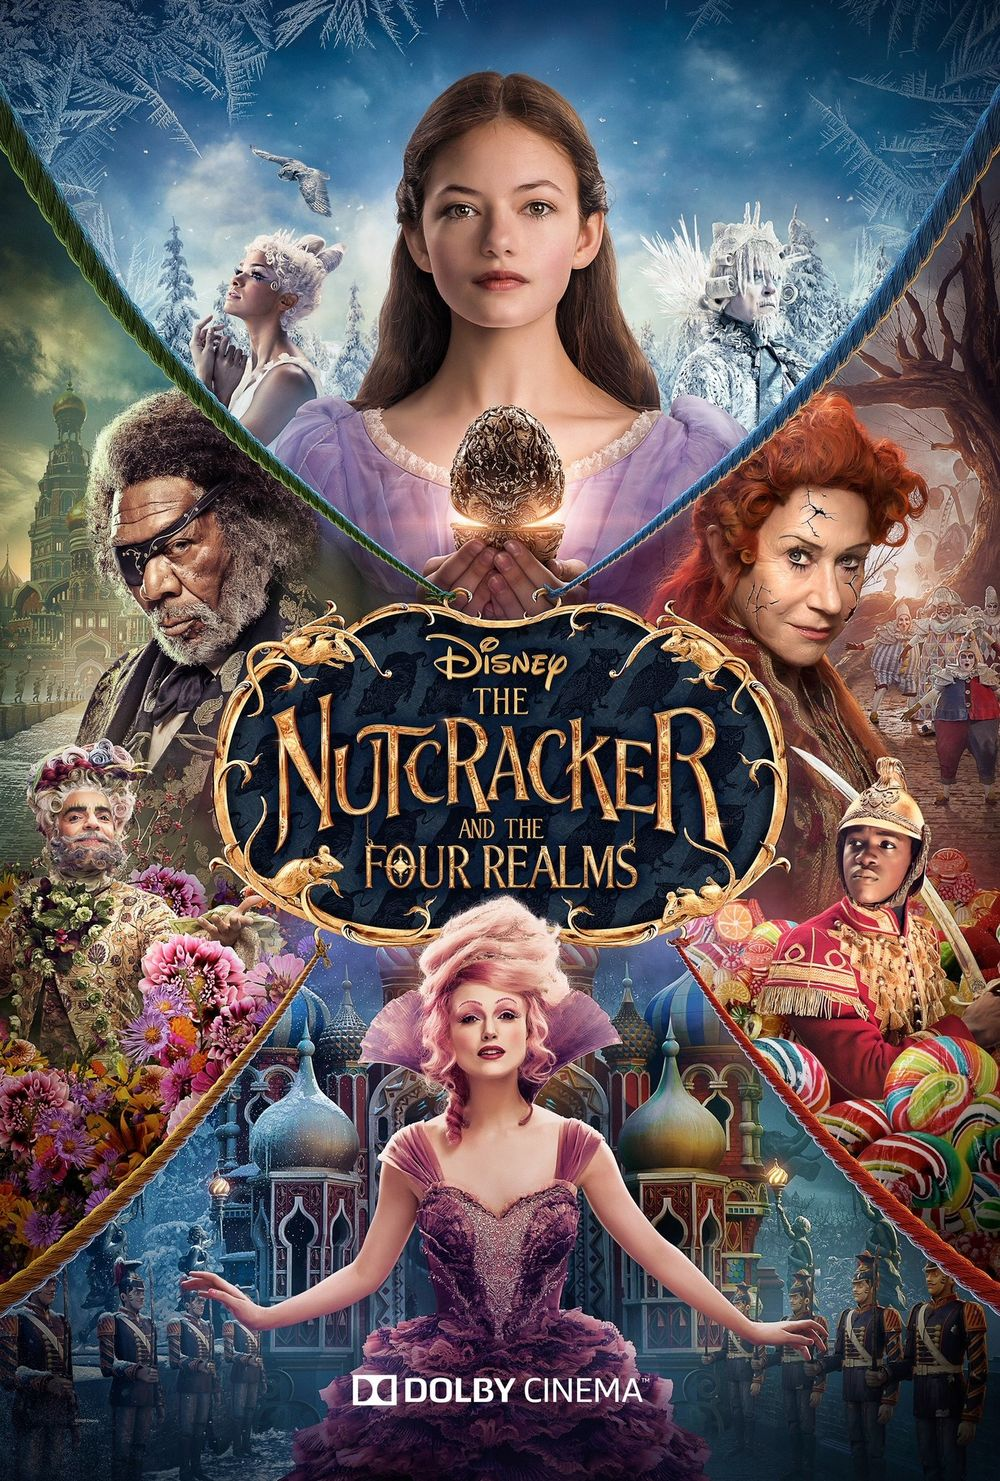 The Nutcracker And The Four Realms Movie Review English Movie Review